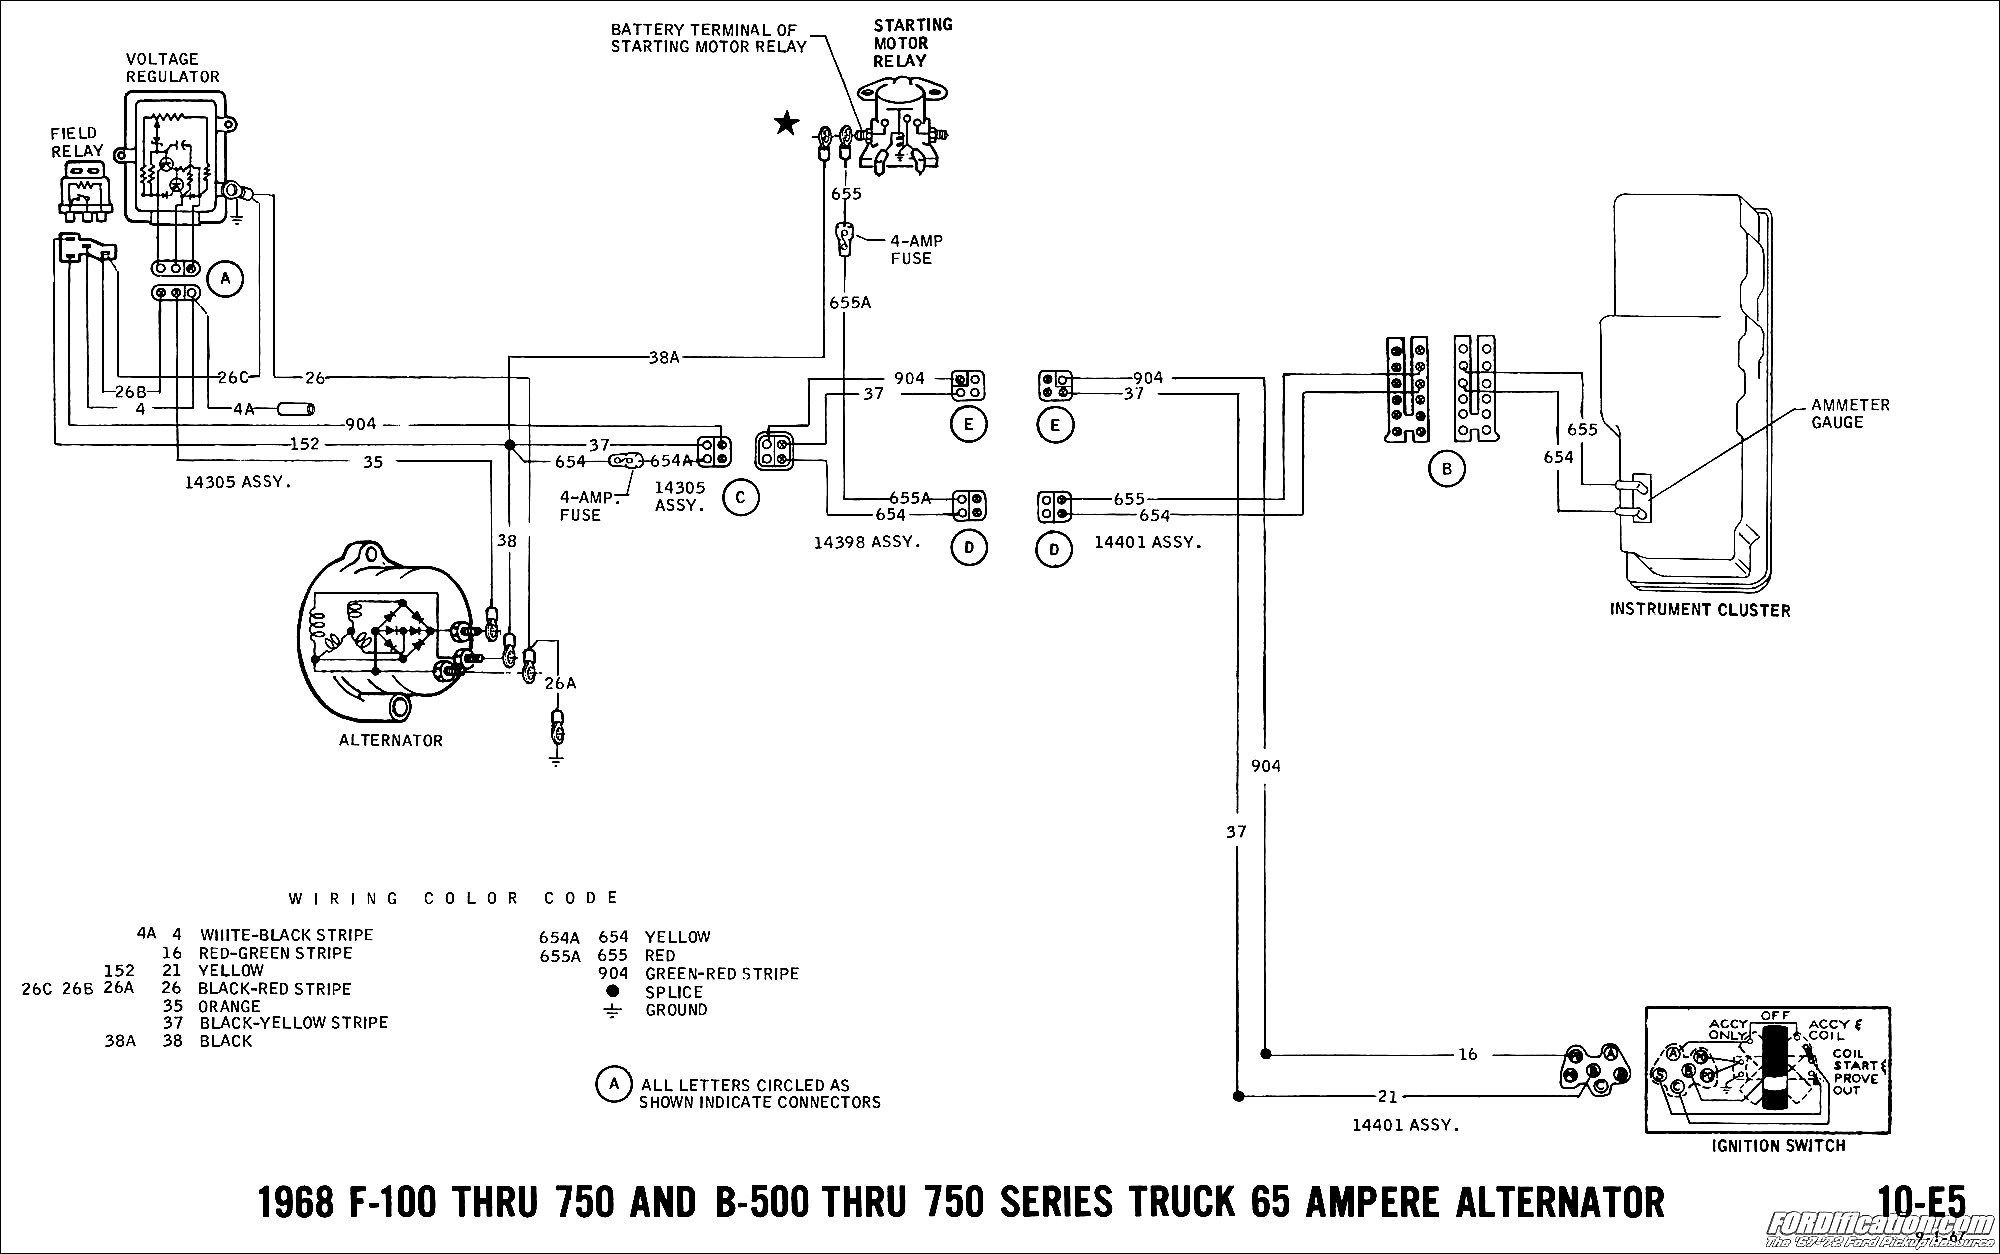 29 Ford Alternator Wiring Diagram - bookingritzcarlton.info | Alternator, Electrical  diagram, Diagram | Ford New Holland Wiring Diagram |  | Pinterest